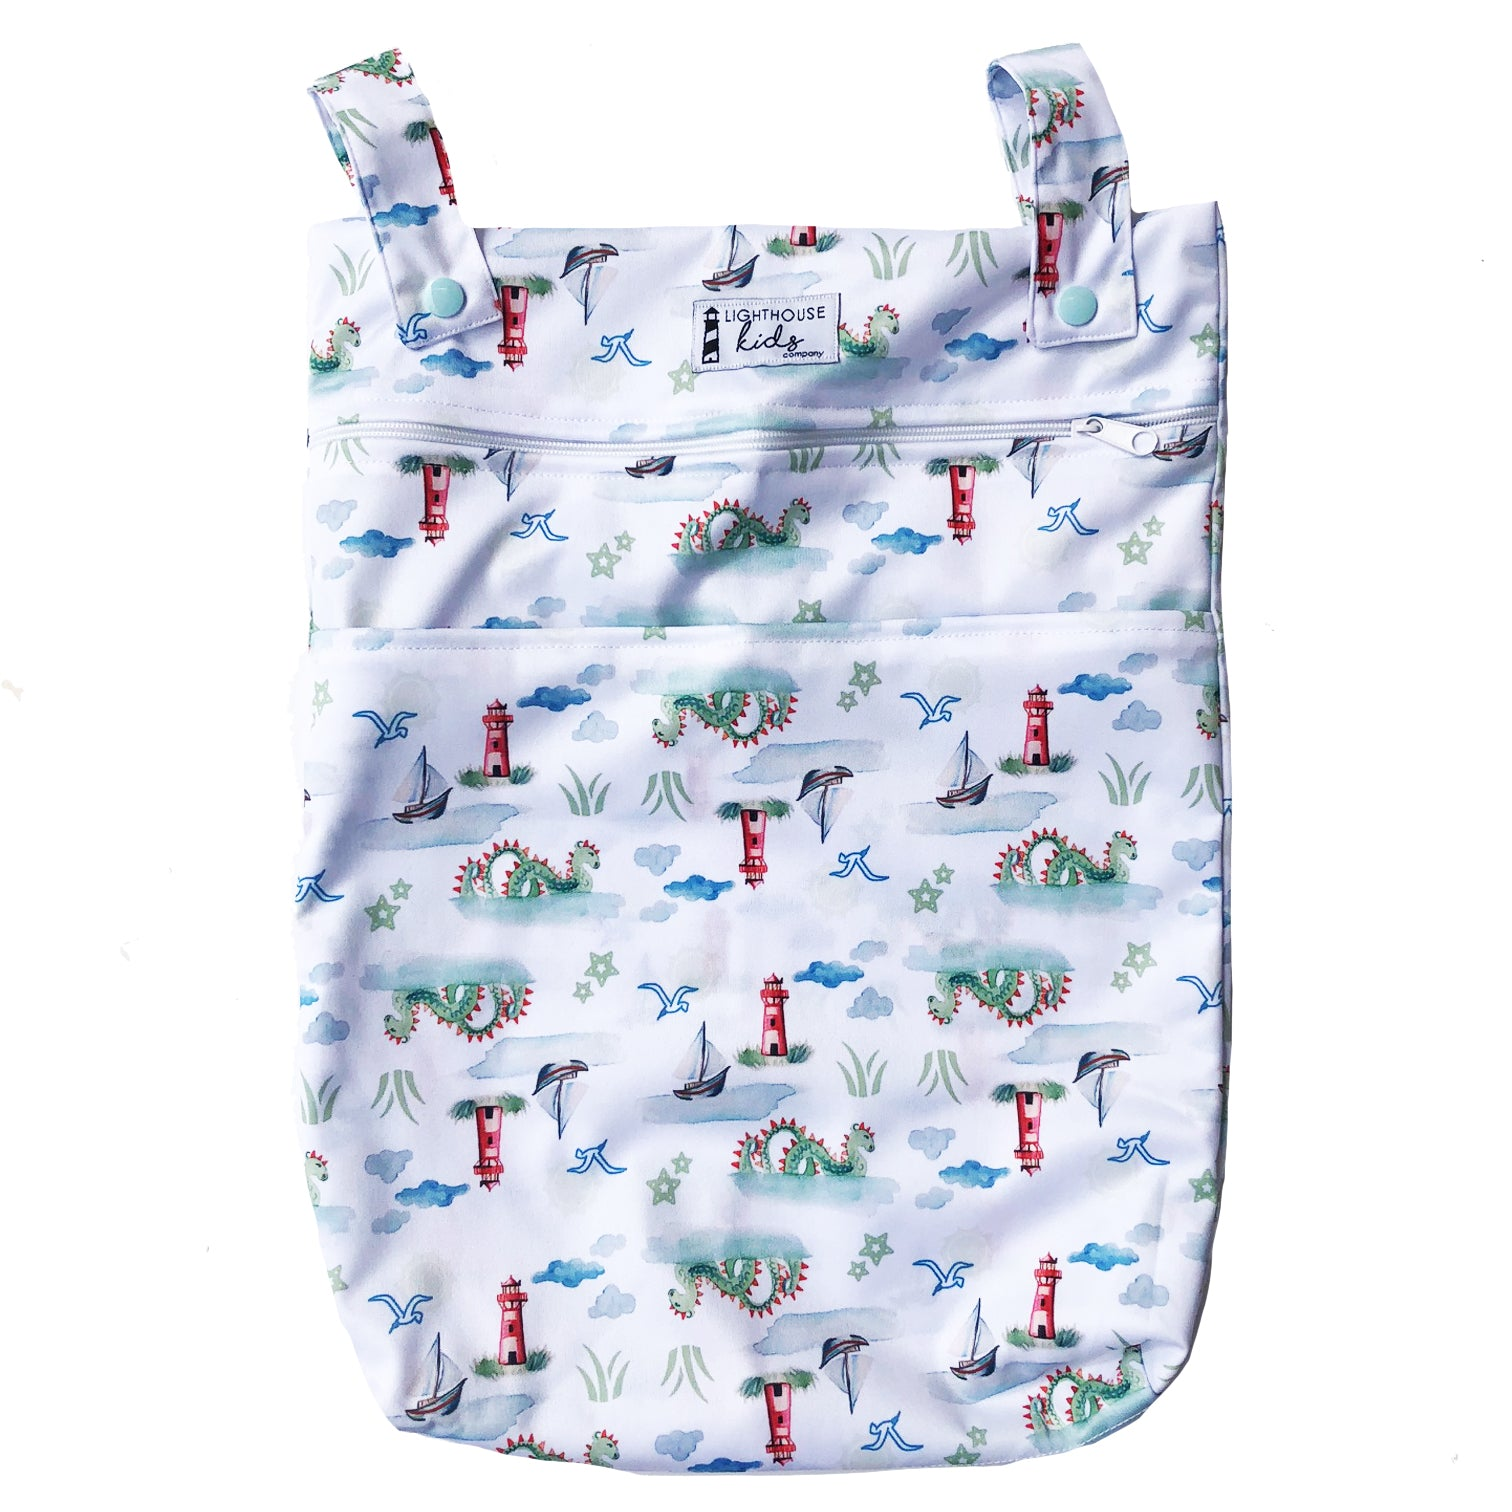 Lighthouse Kids Wet Bag -  Medium